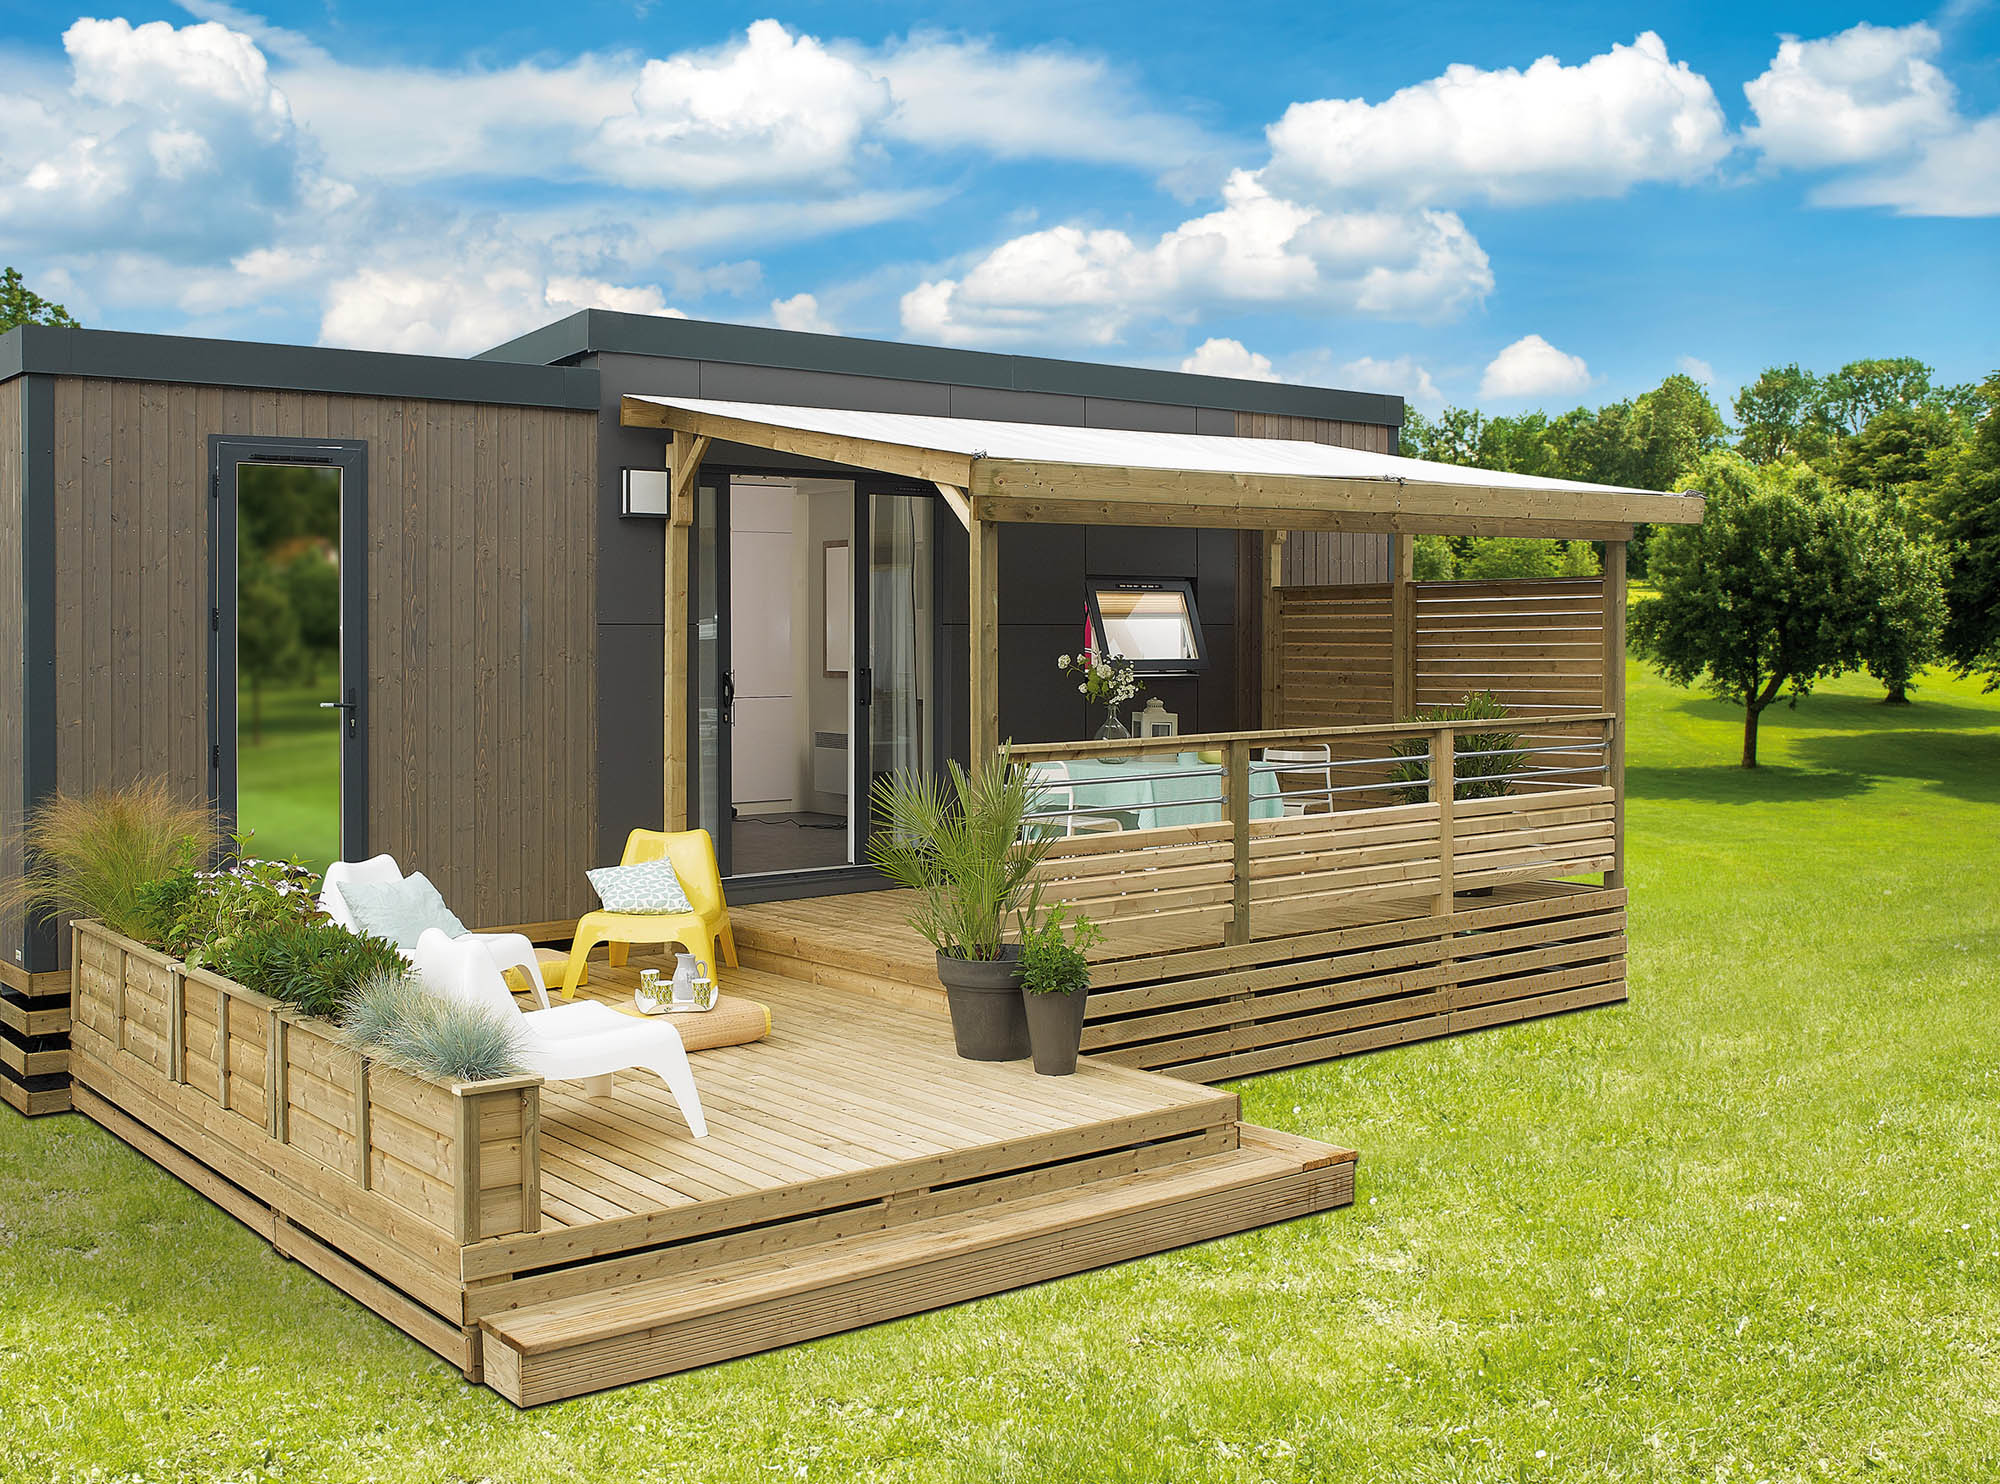 terrasse en bois pour mobil home clairval conseils pratiques terrasses mobilhome. Black Bedroom Furniture Sets. Home Design Ideas